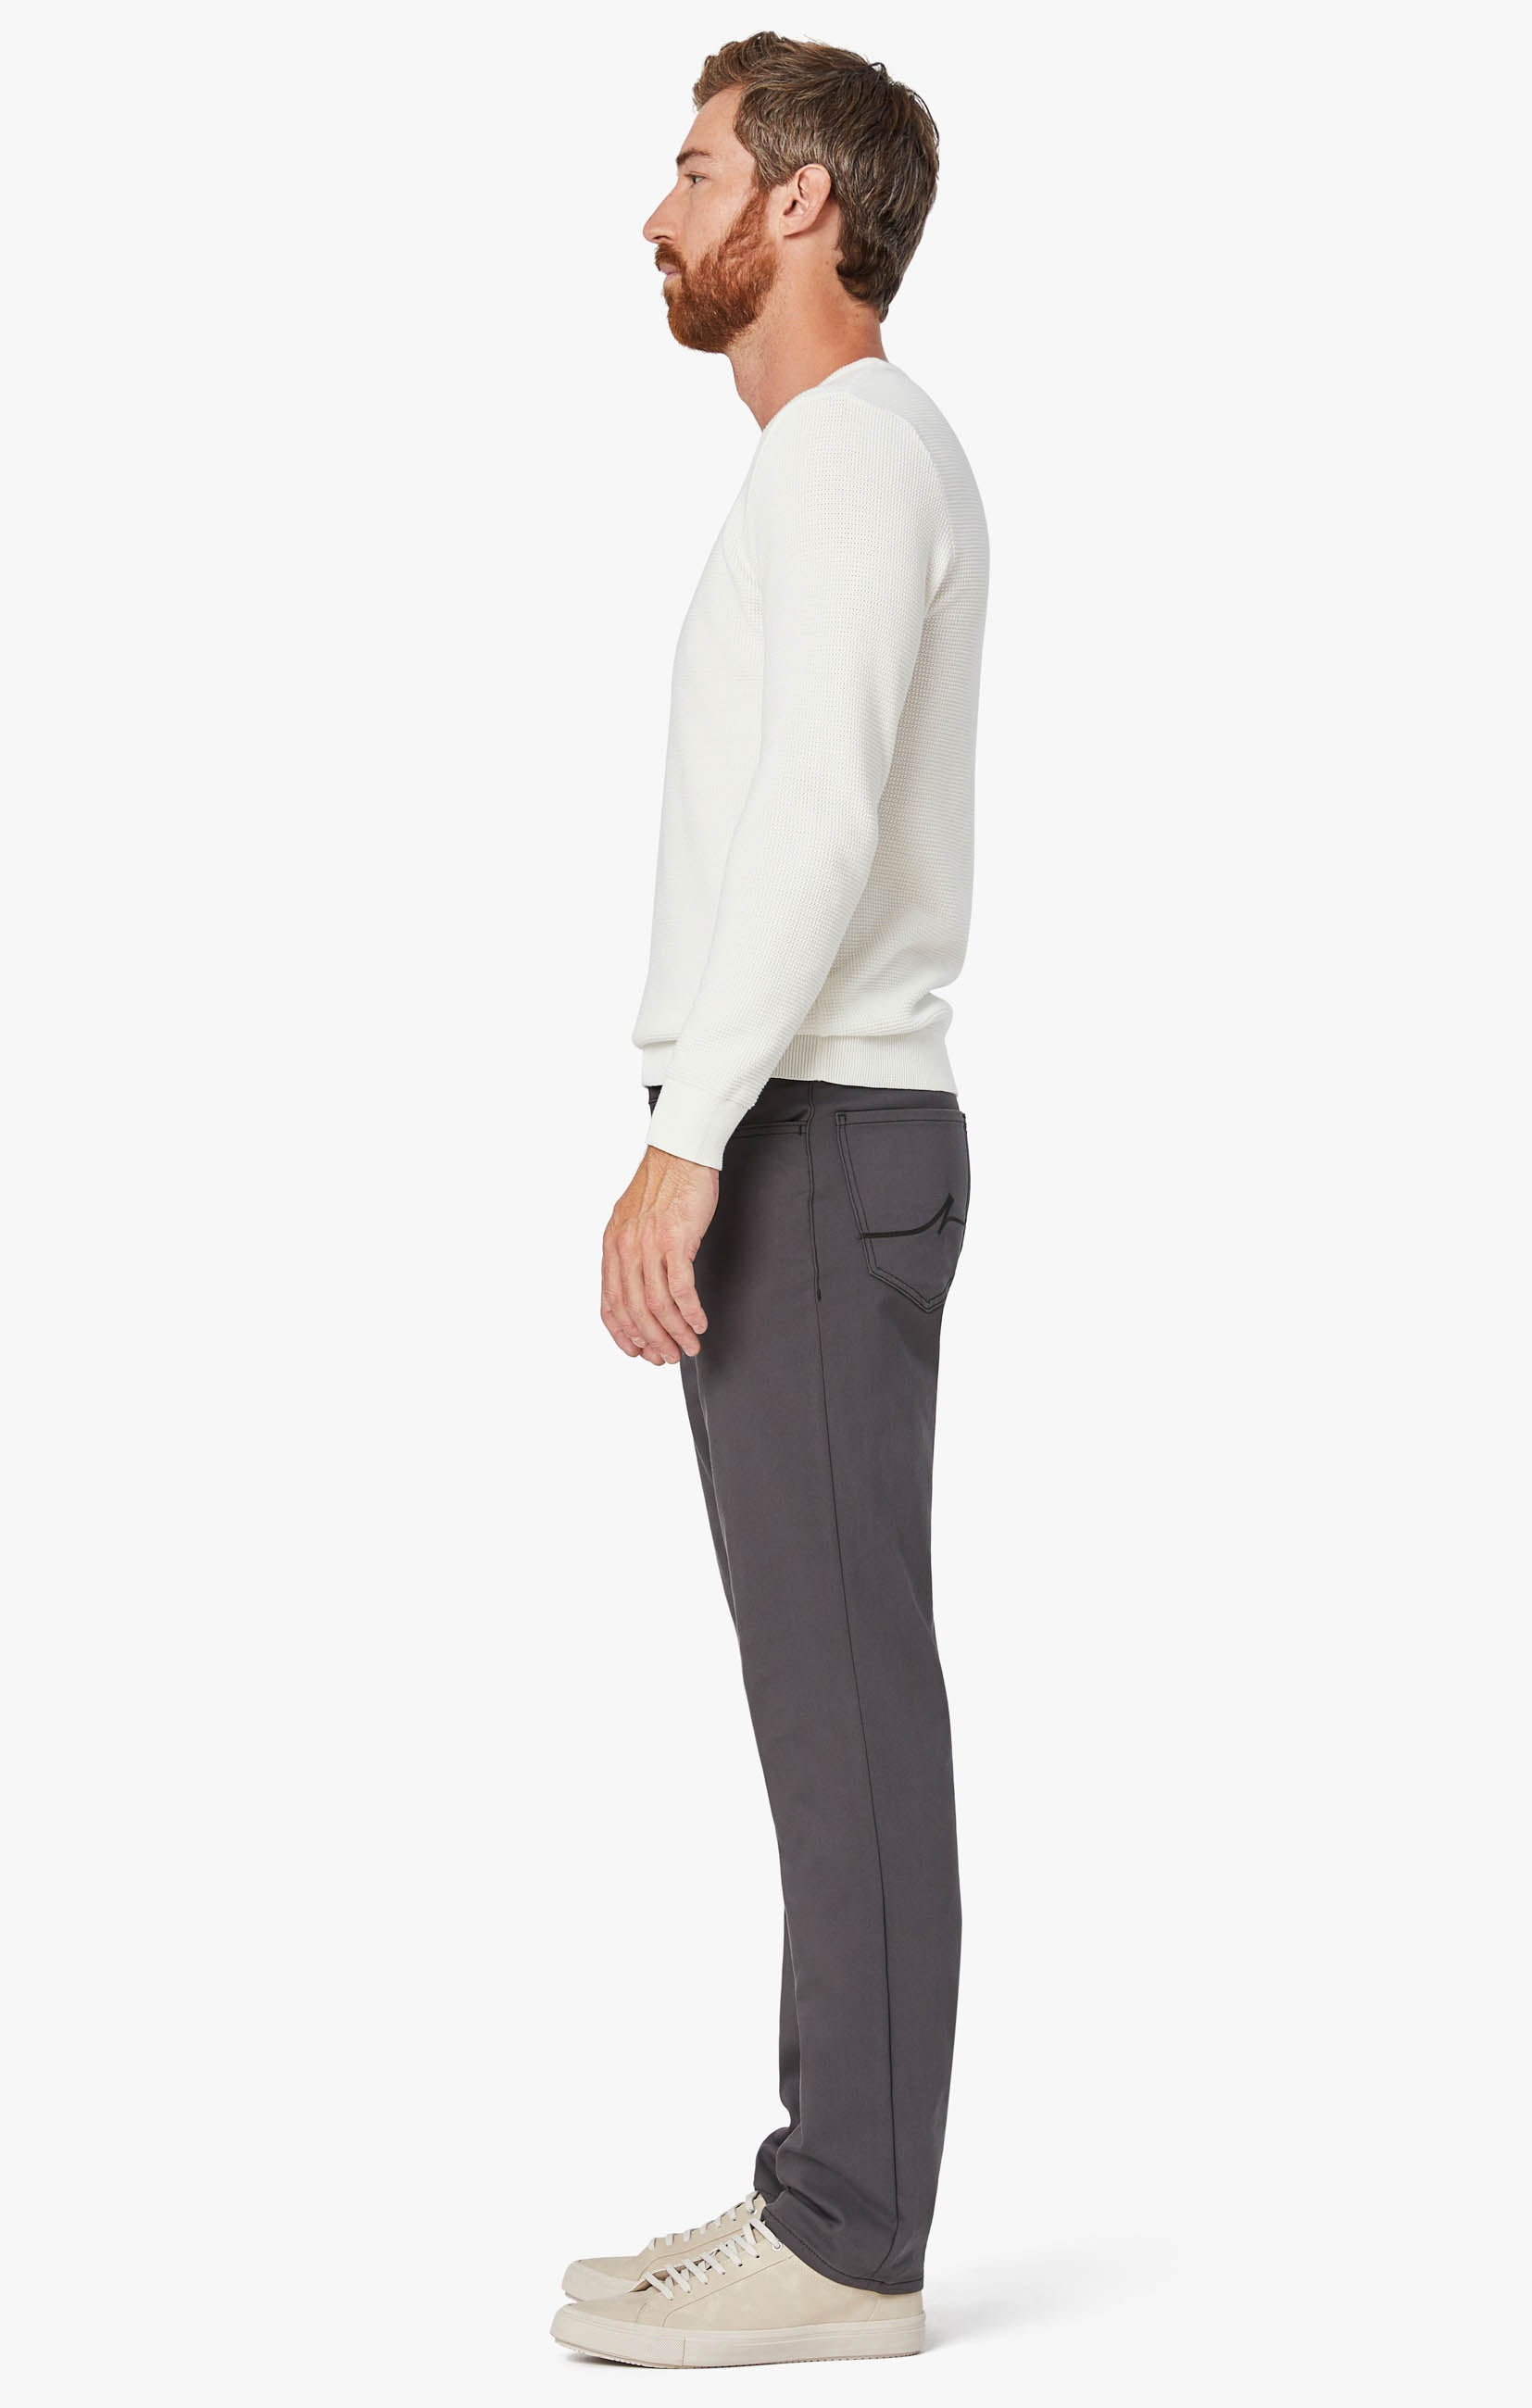 Charisma Relaxed Straight Commuter Pants In Graphite Image 2